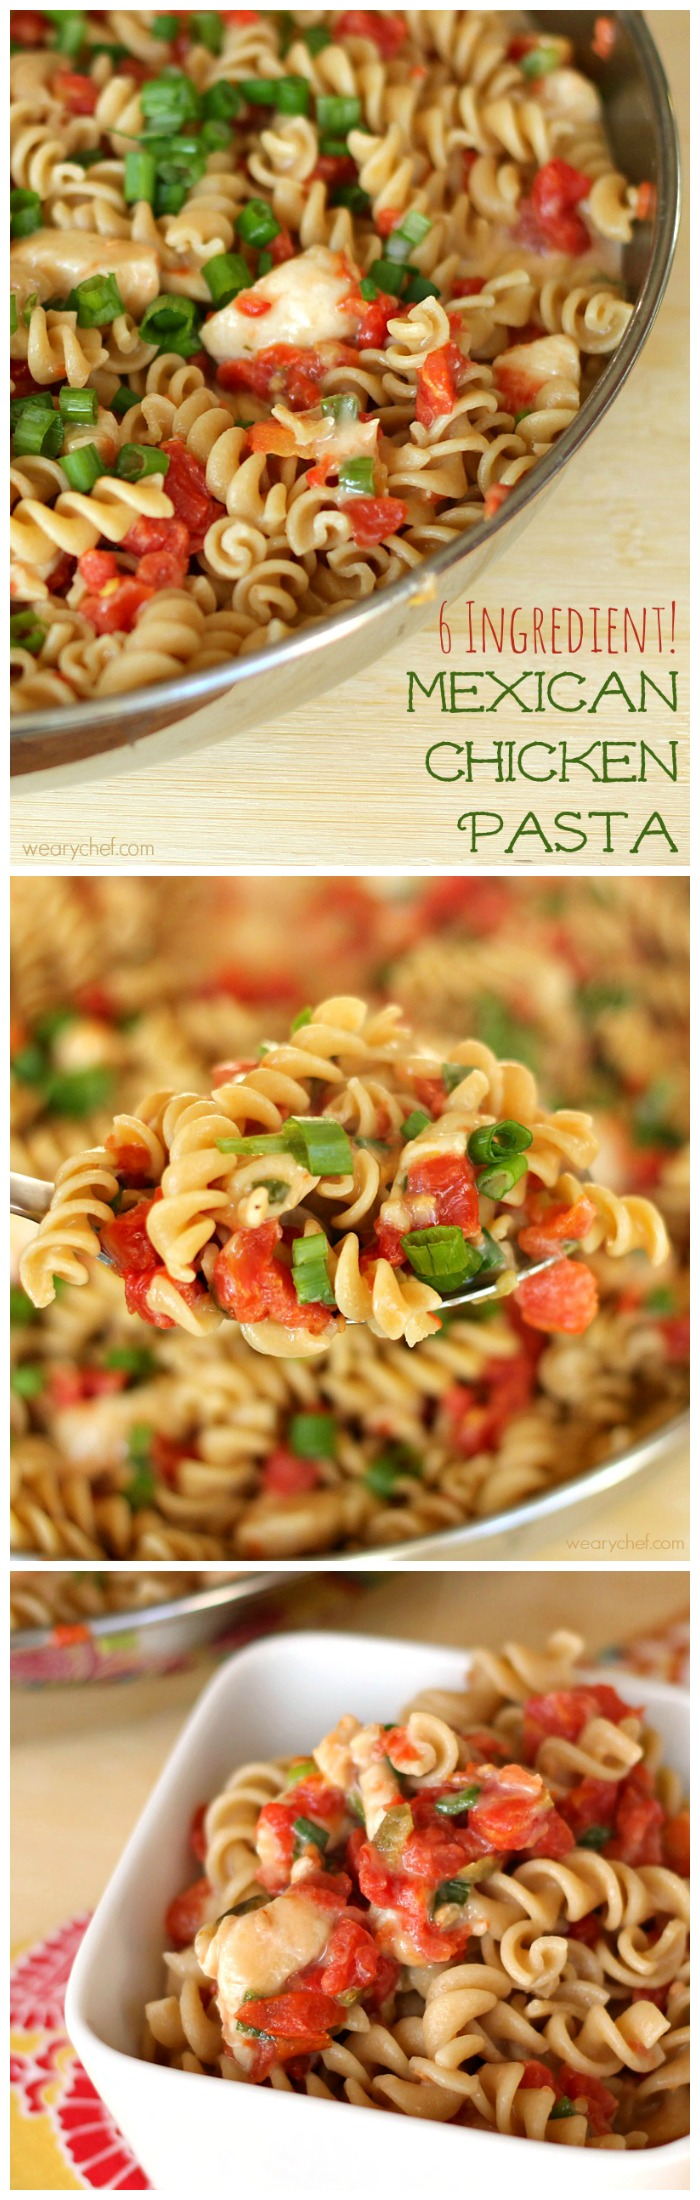 Treat yourself to this super easy dinner recipe with only six ingredients!